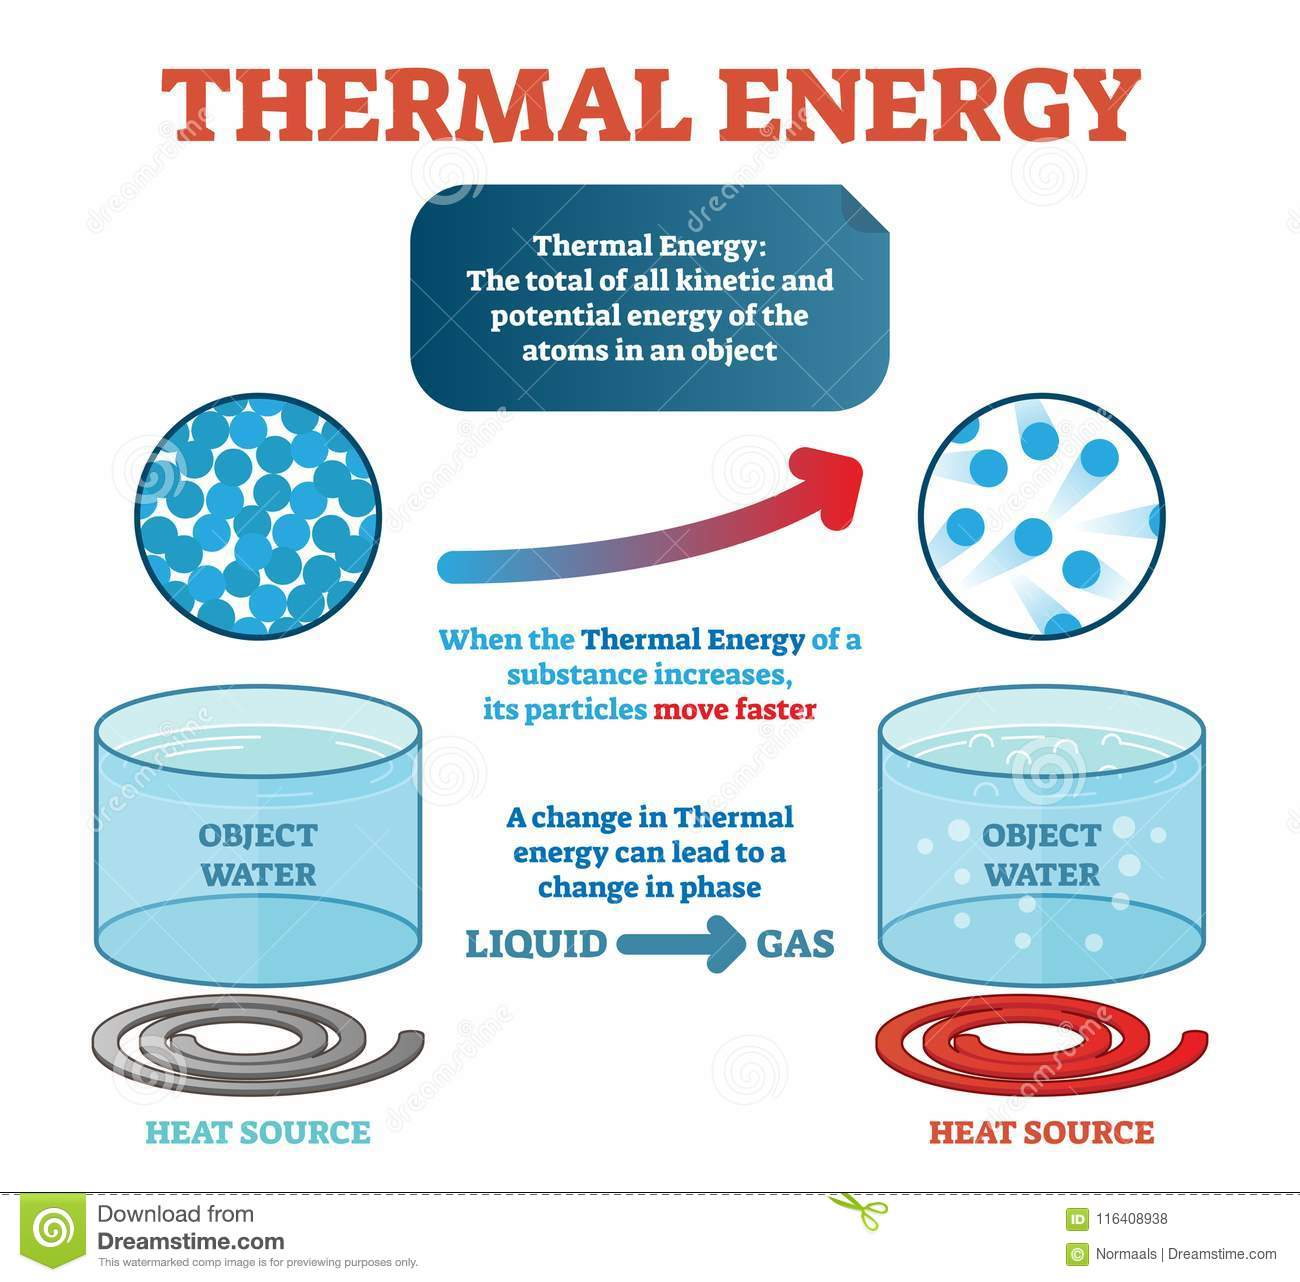 thermal energy physics definition, example with water and kinetic